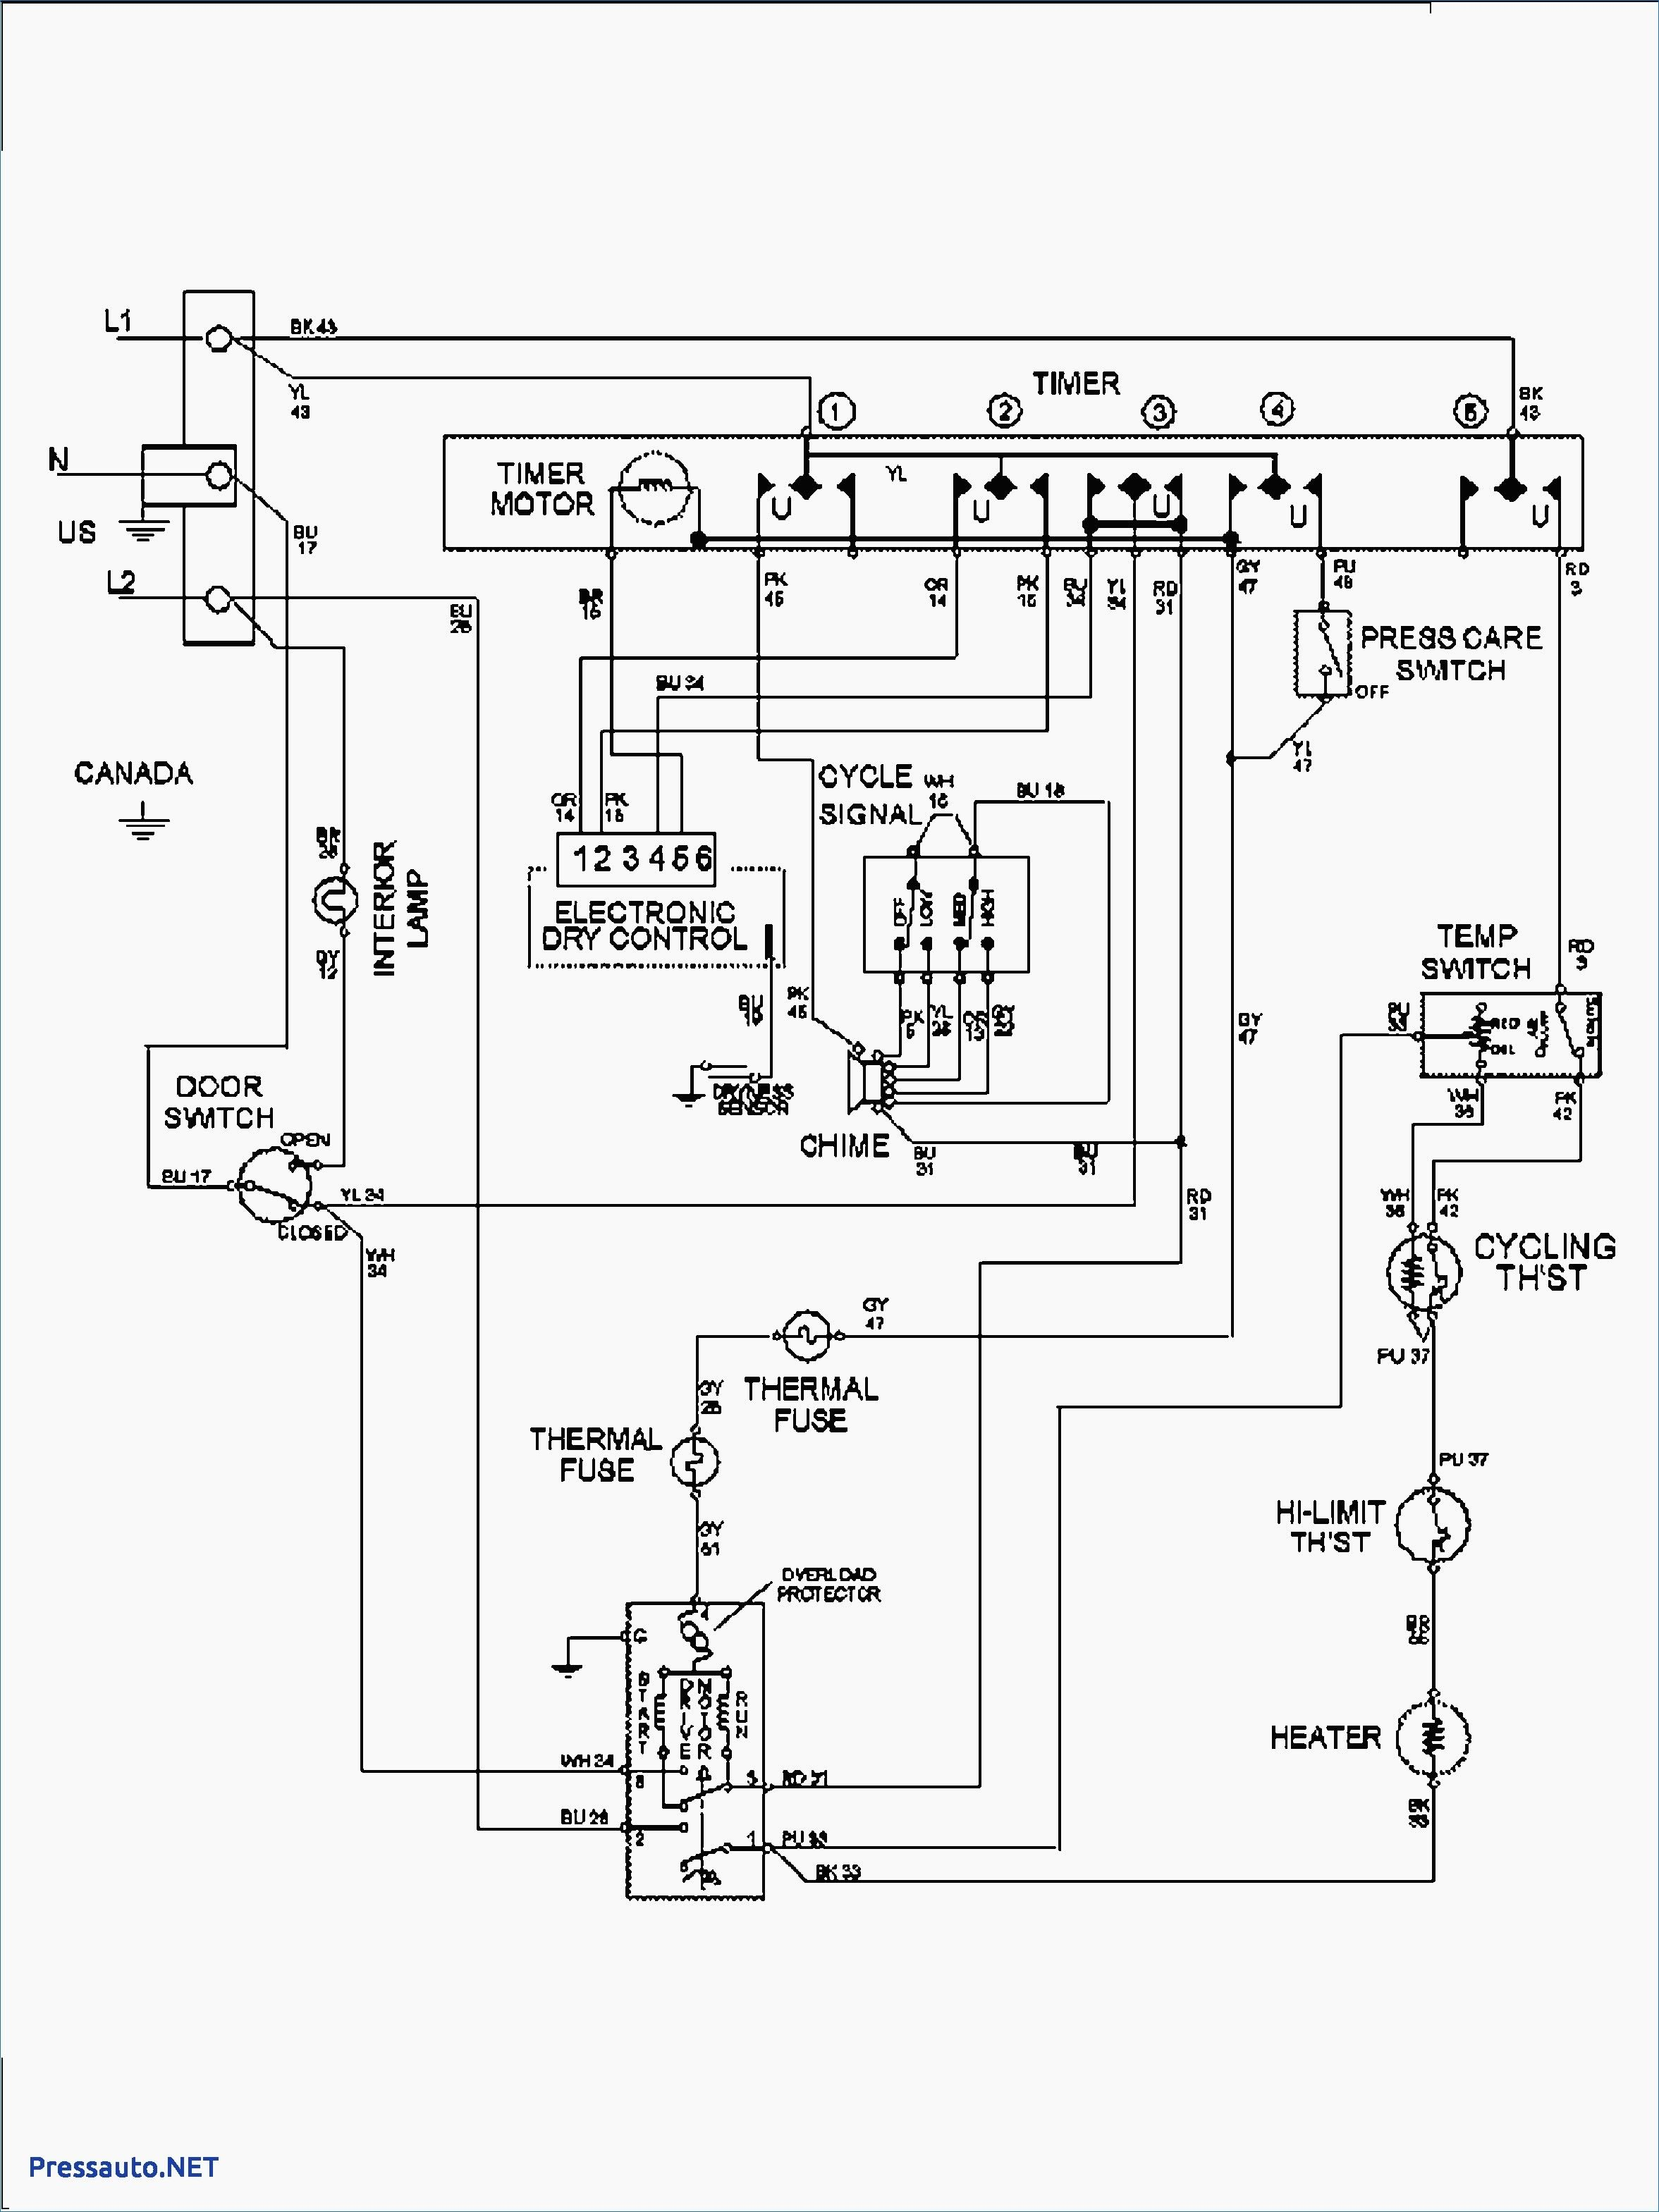 Wiring Diagram Of Washing Machine Http Bookingritzcarlton Info Wiring Diagram Of Washing Electric Dryers Maytag Dryer Washing Machine And Dryer